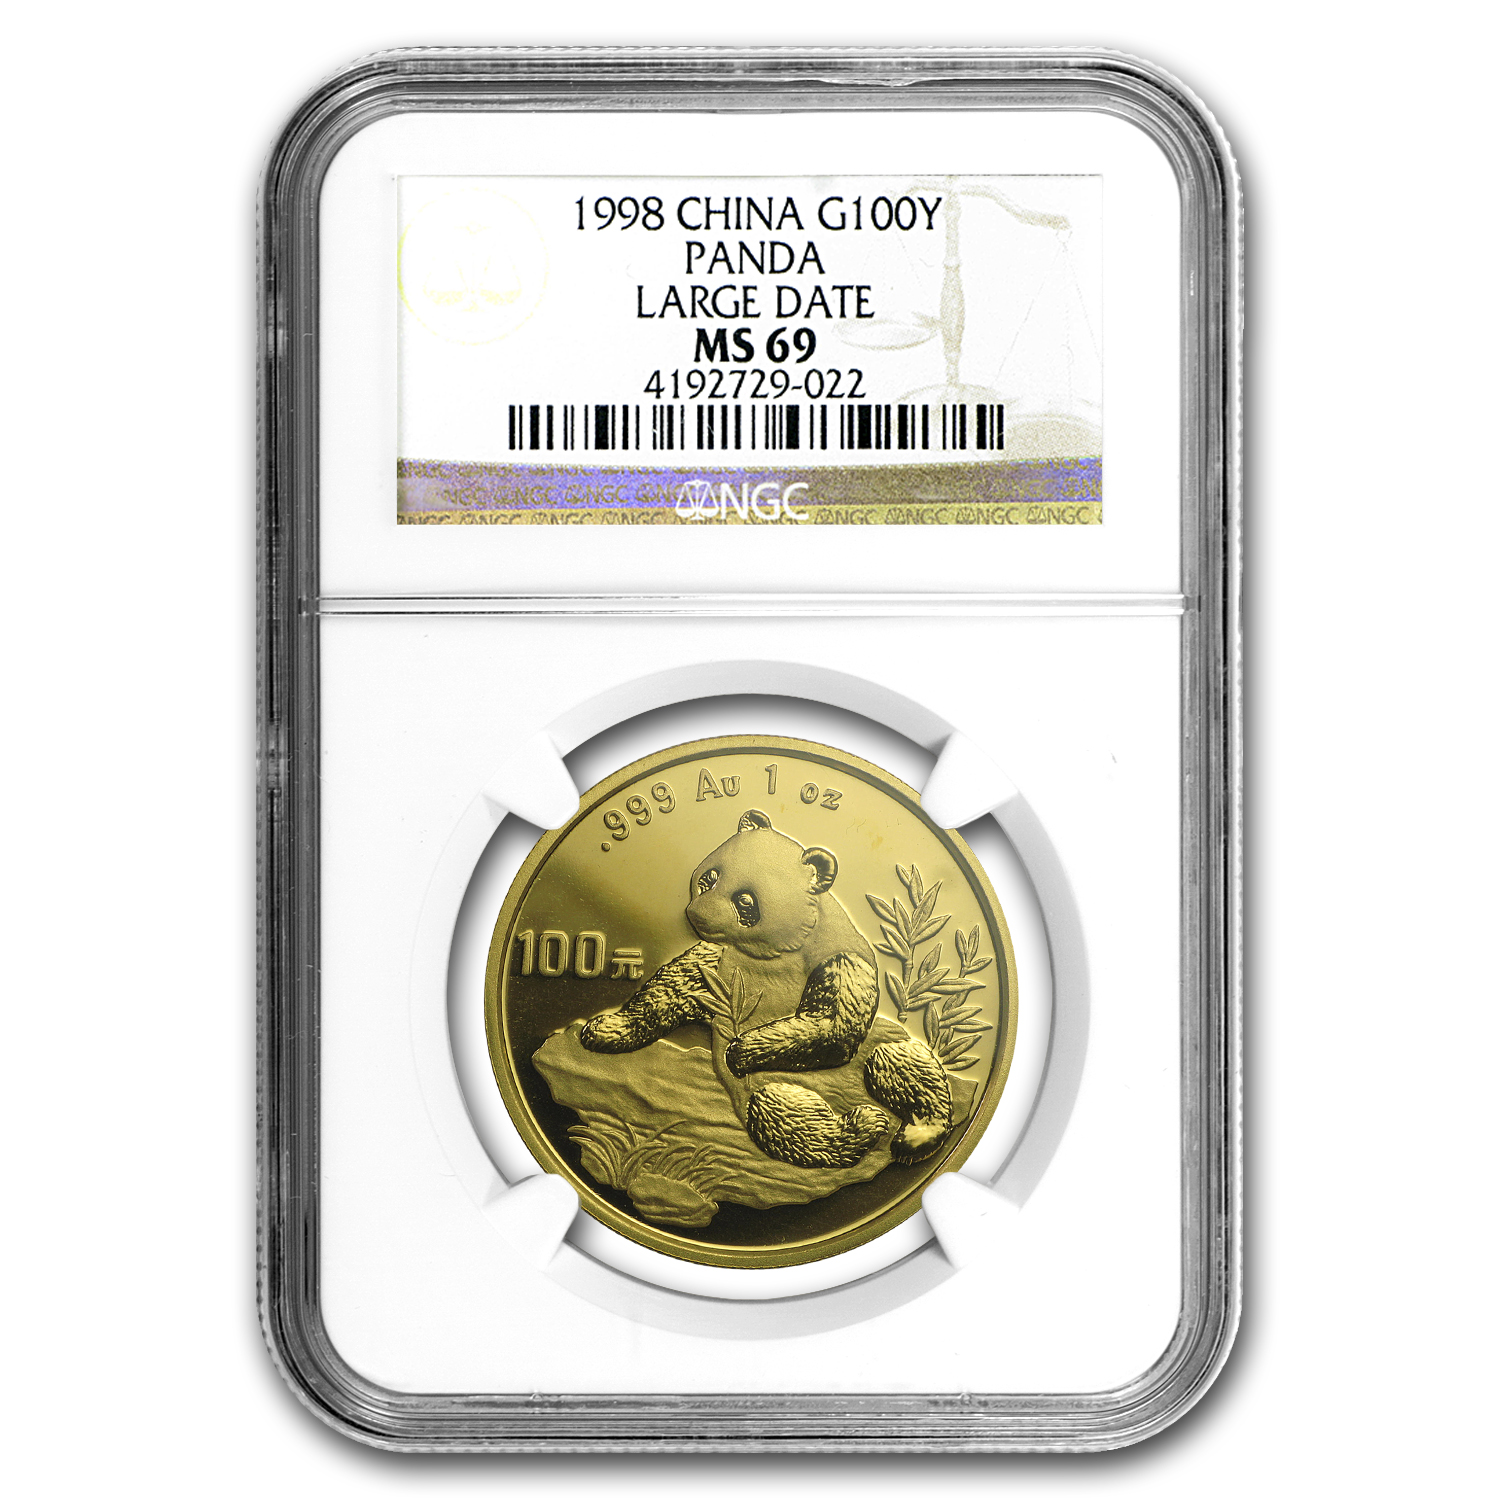 1998 1 oz Gold Chinese Panda MS-69 NGC - Large Date